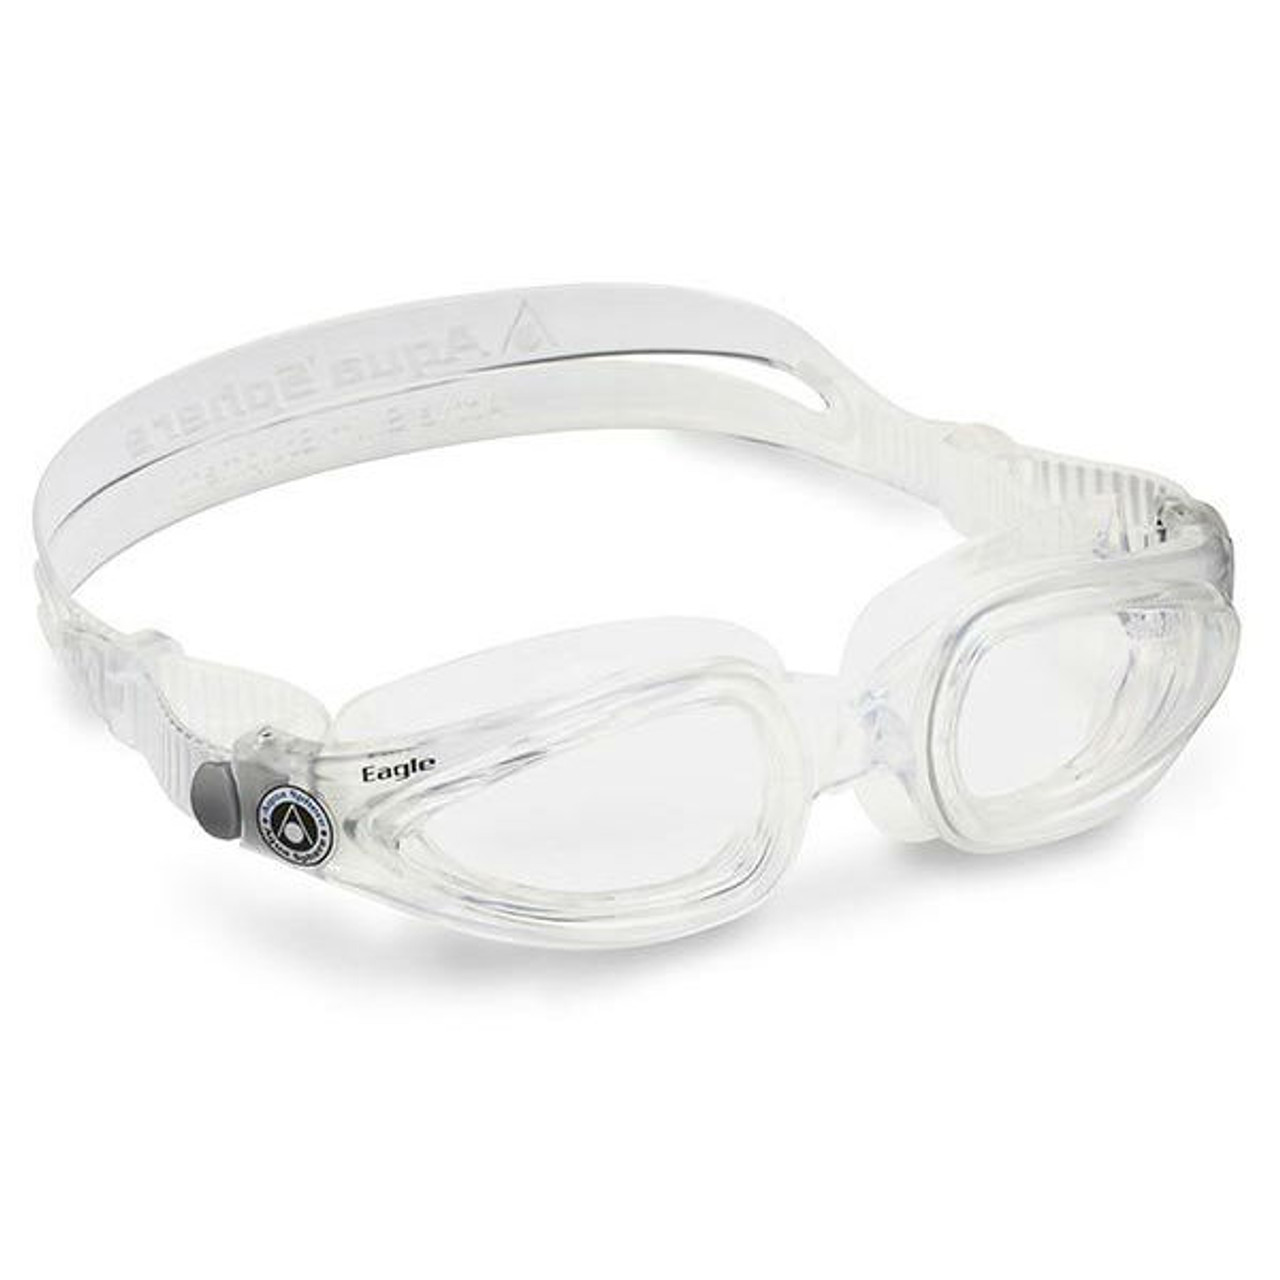 34fb3cc676a Aqua Sphere Eagle Prescription Swimming Goggles - Extra Lens ...